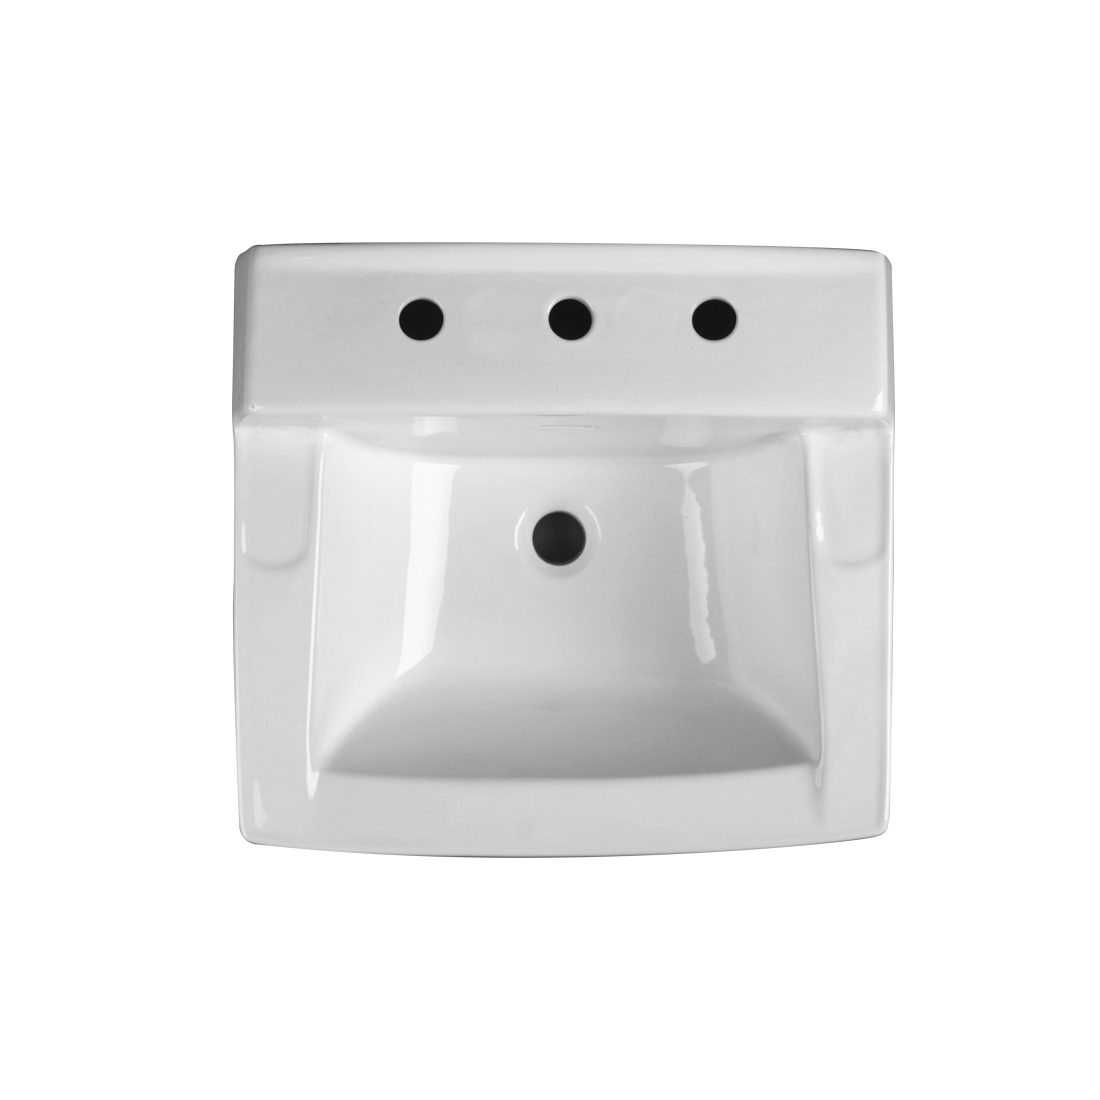 Camden Wall Hung Lavatory 3Hole 8inch White Front View